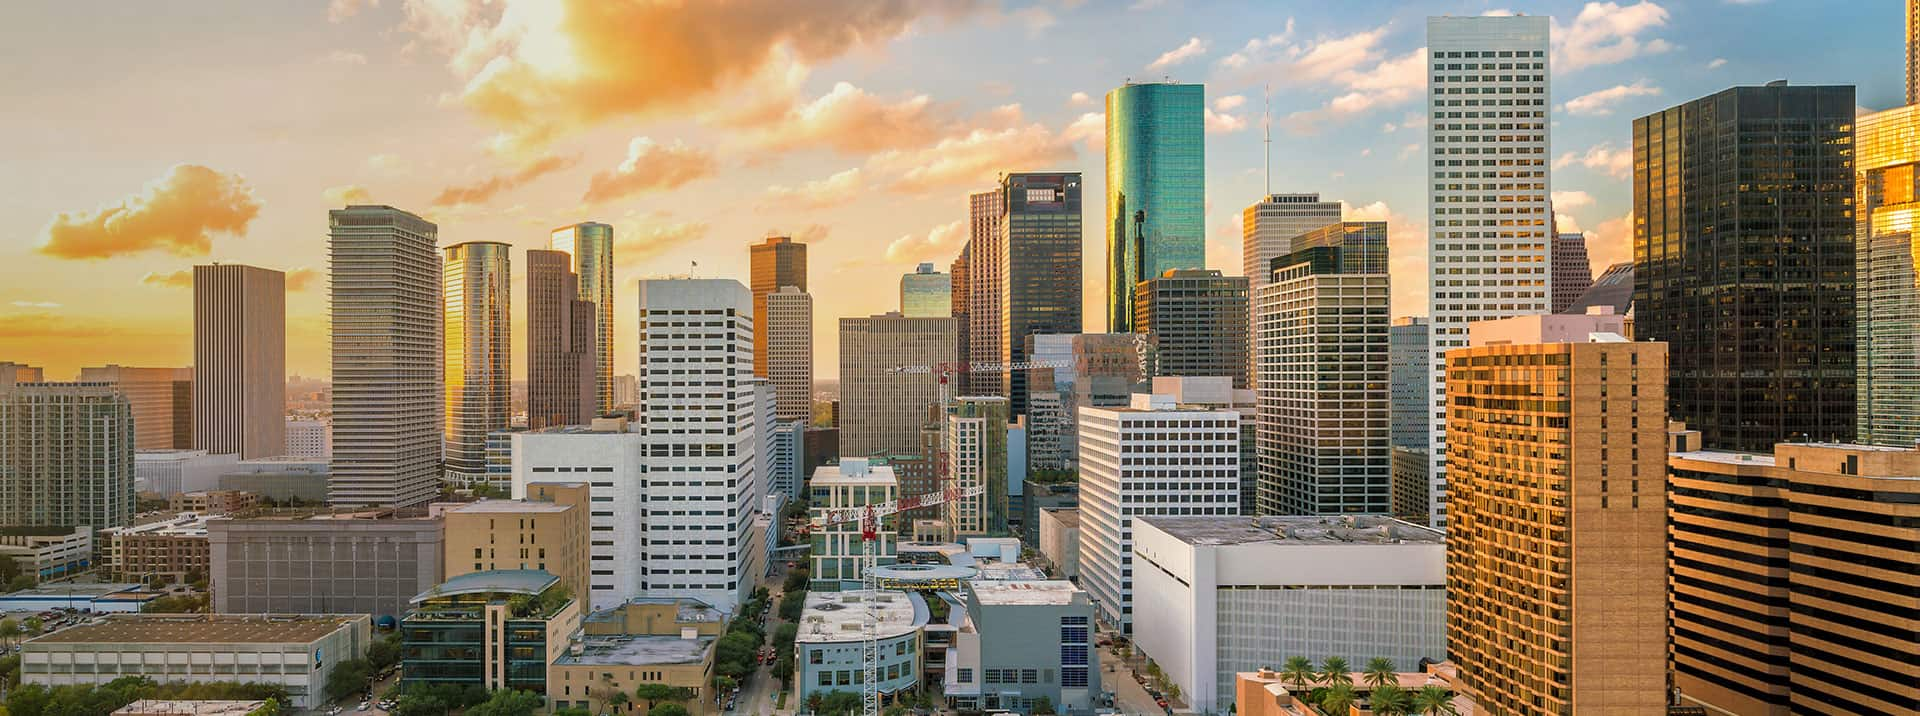 Featured-Image_Houston_1920x716